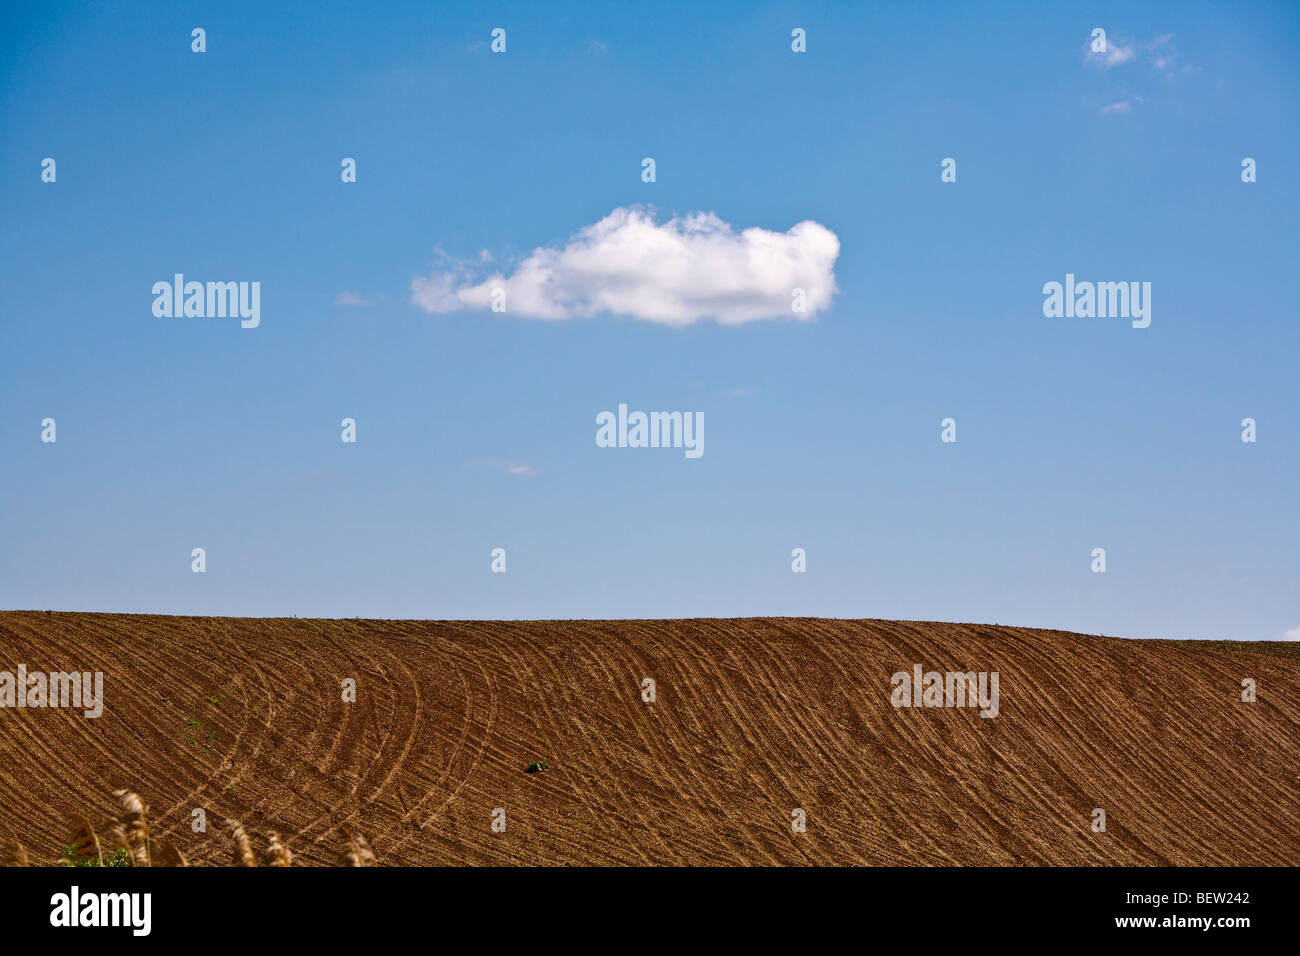 Single white cloud in clear blue sky over a plowed field out in the country side - Stock Image